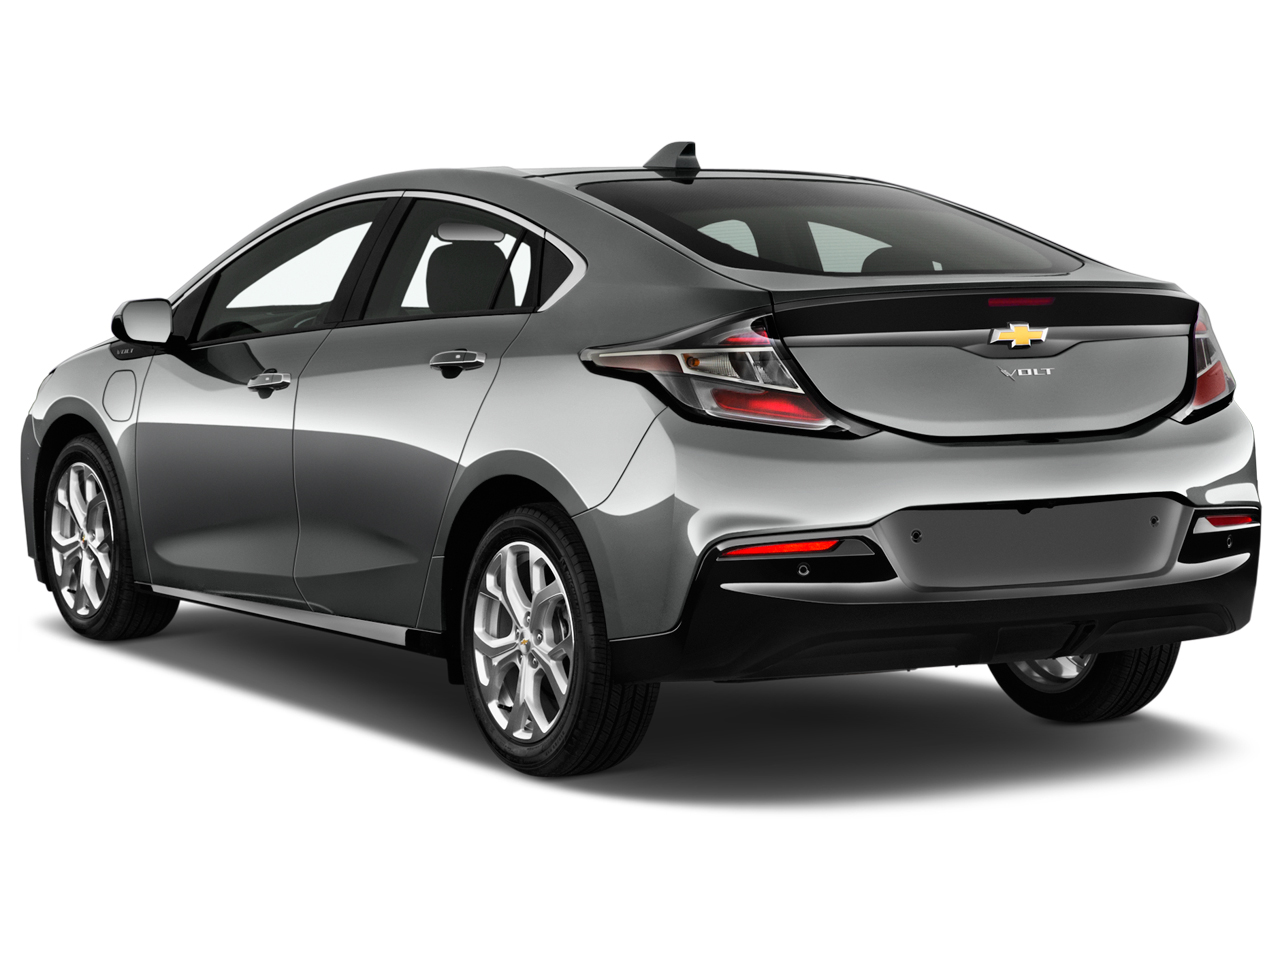 The 2016 Chevy Volt is radically different, Due this December